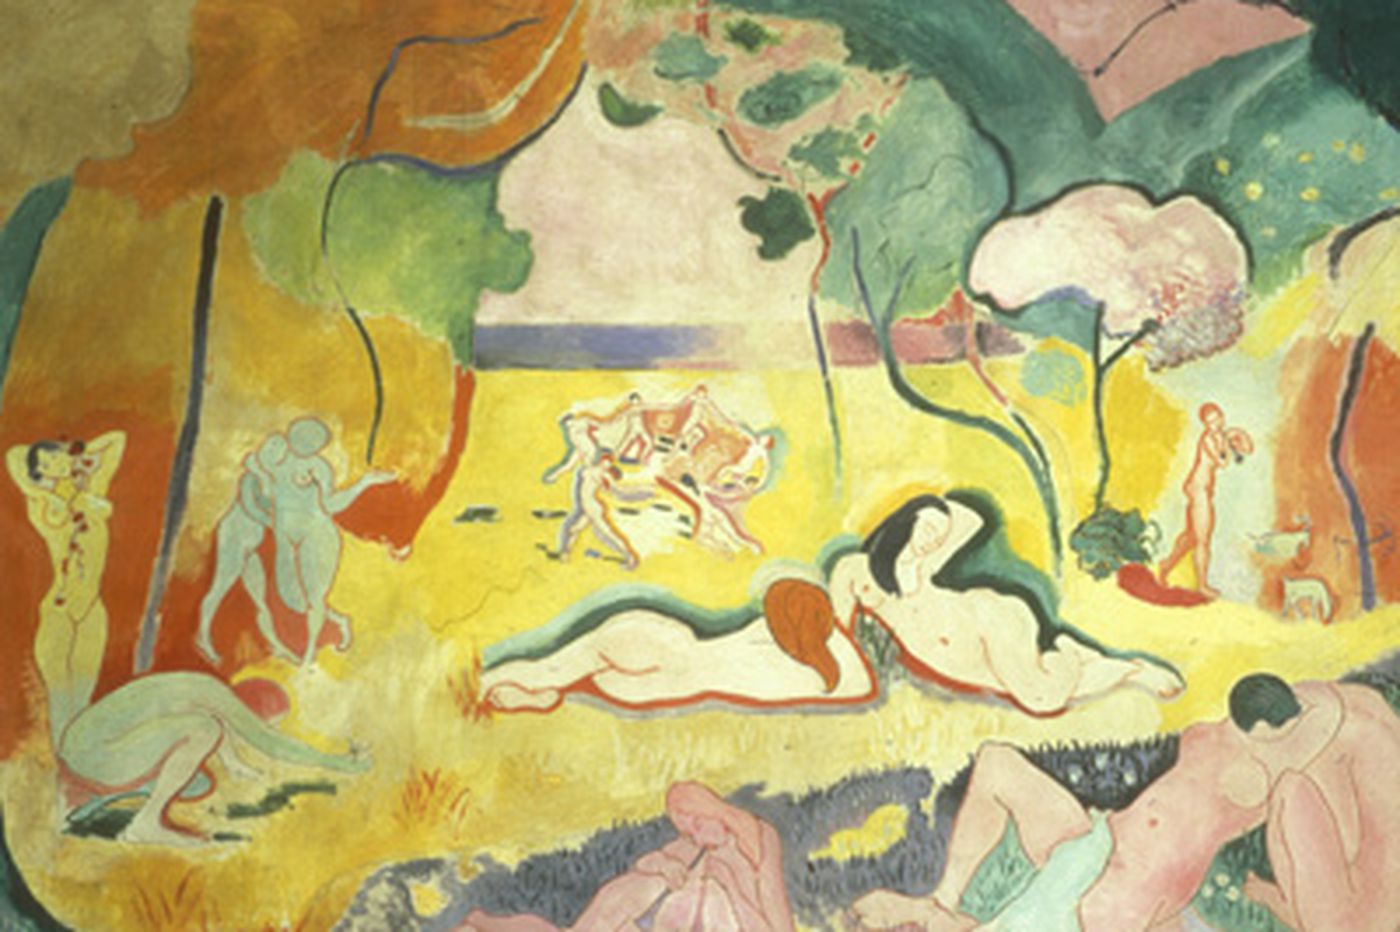 Classic Matisse painting at the Barnes Foundation has faded but help is on the way